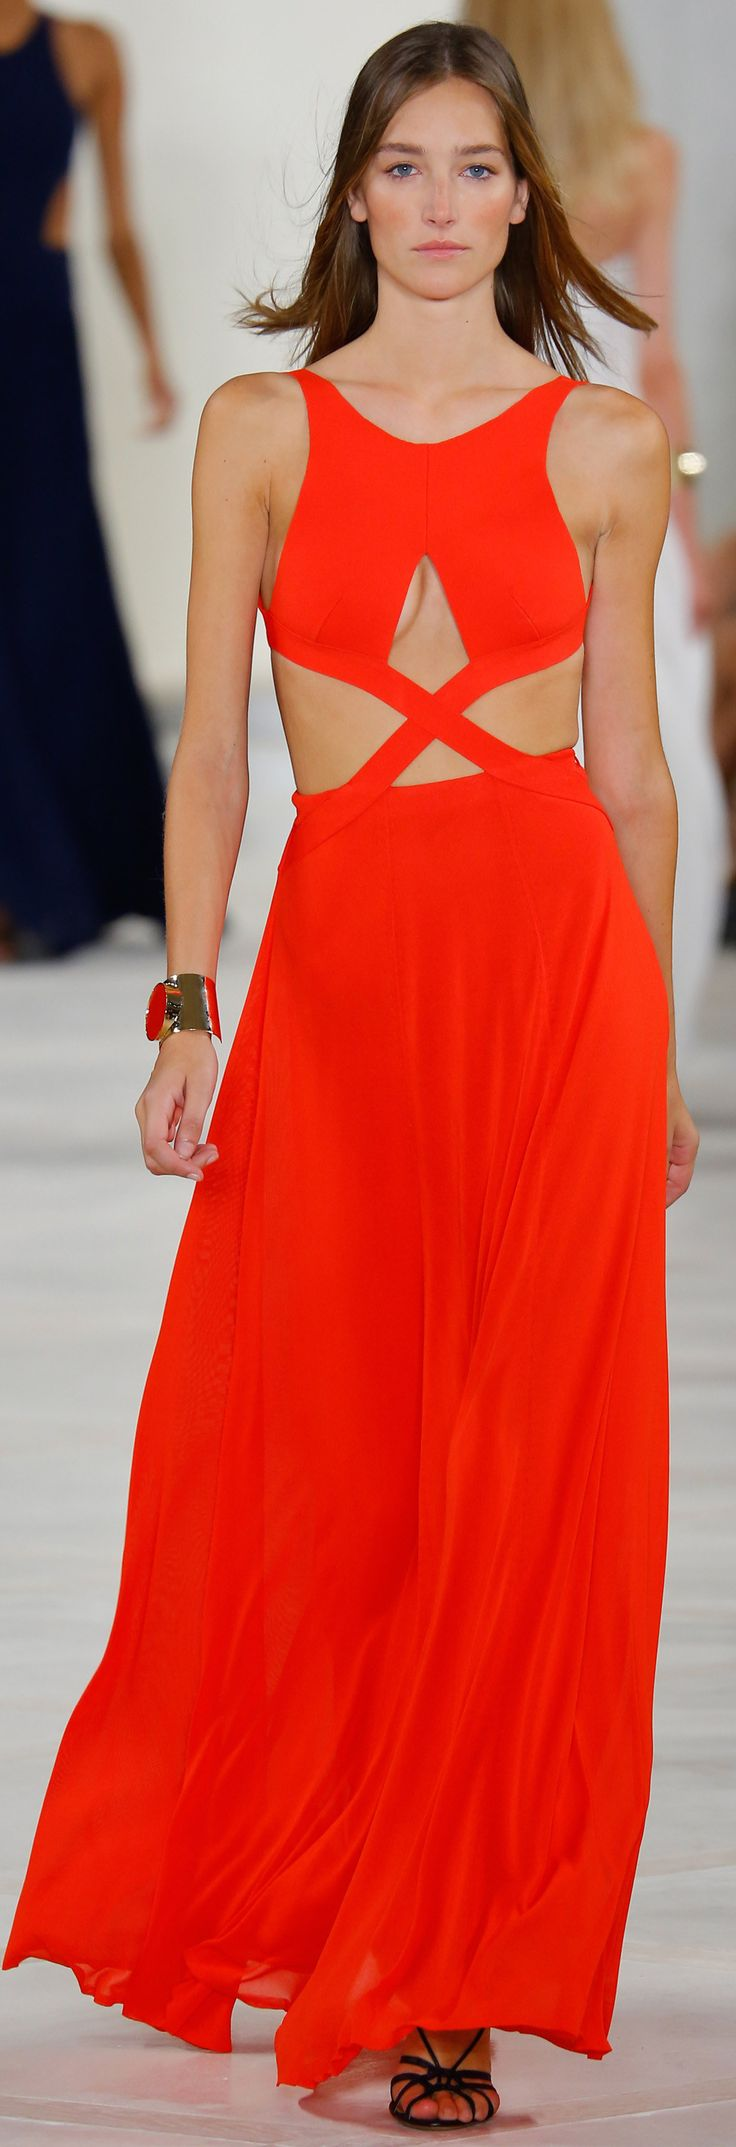 Spring 2016 Ralph Lauren Collection: bright red gown with cut out details